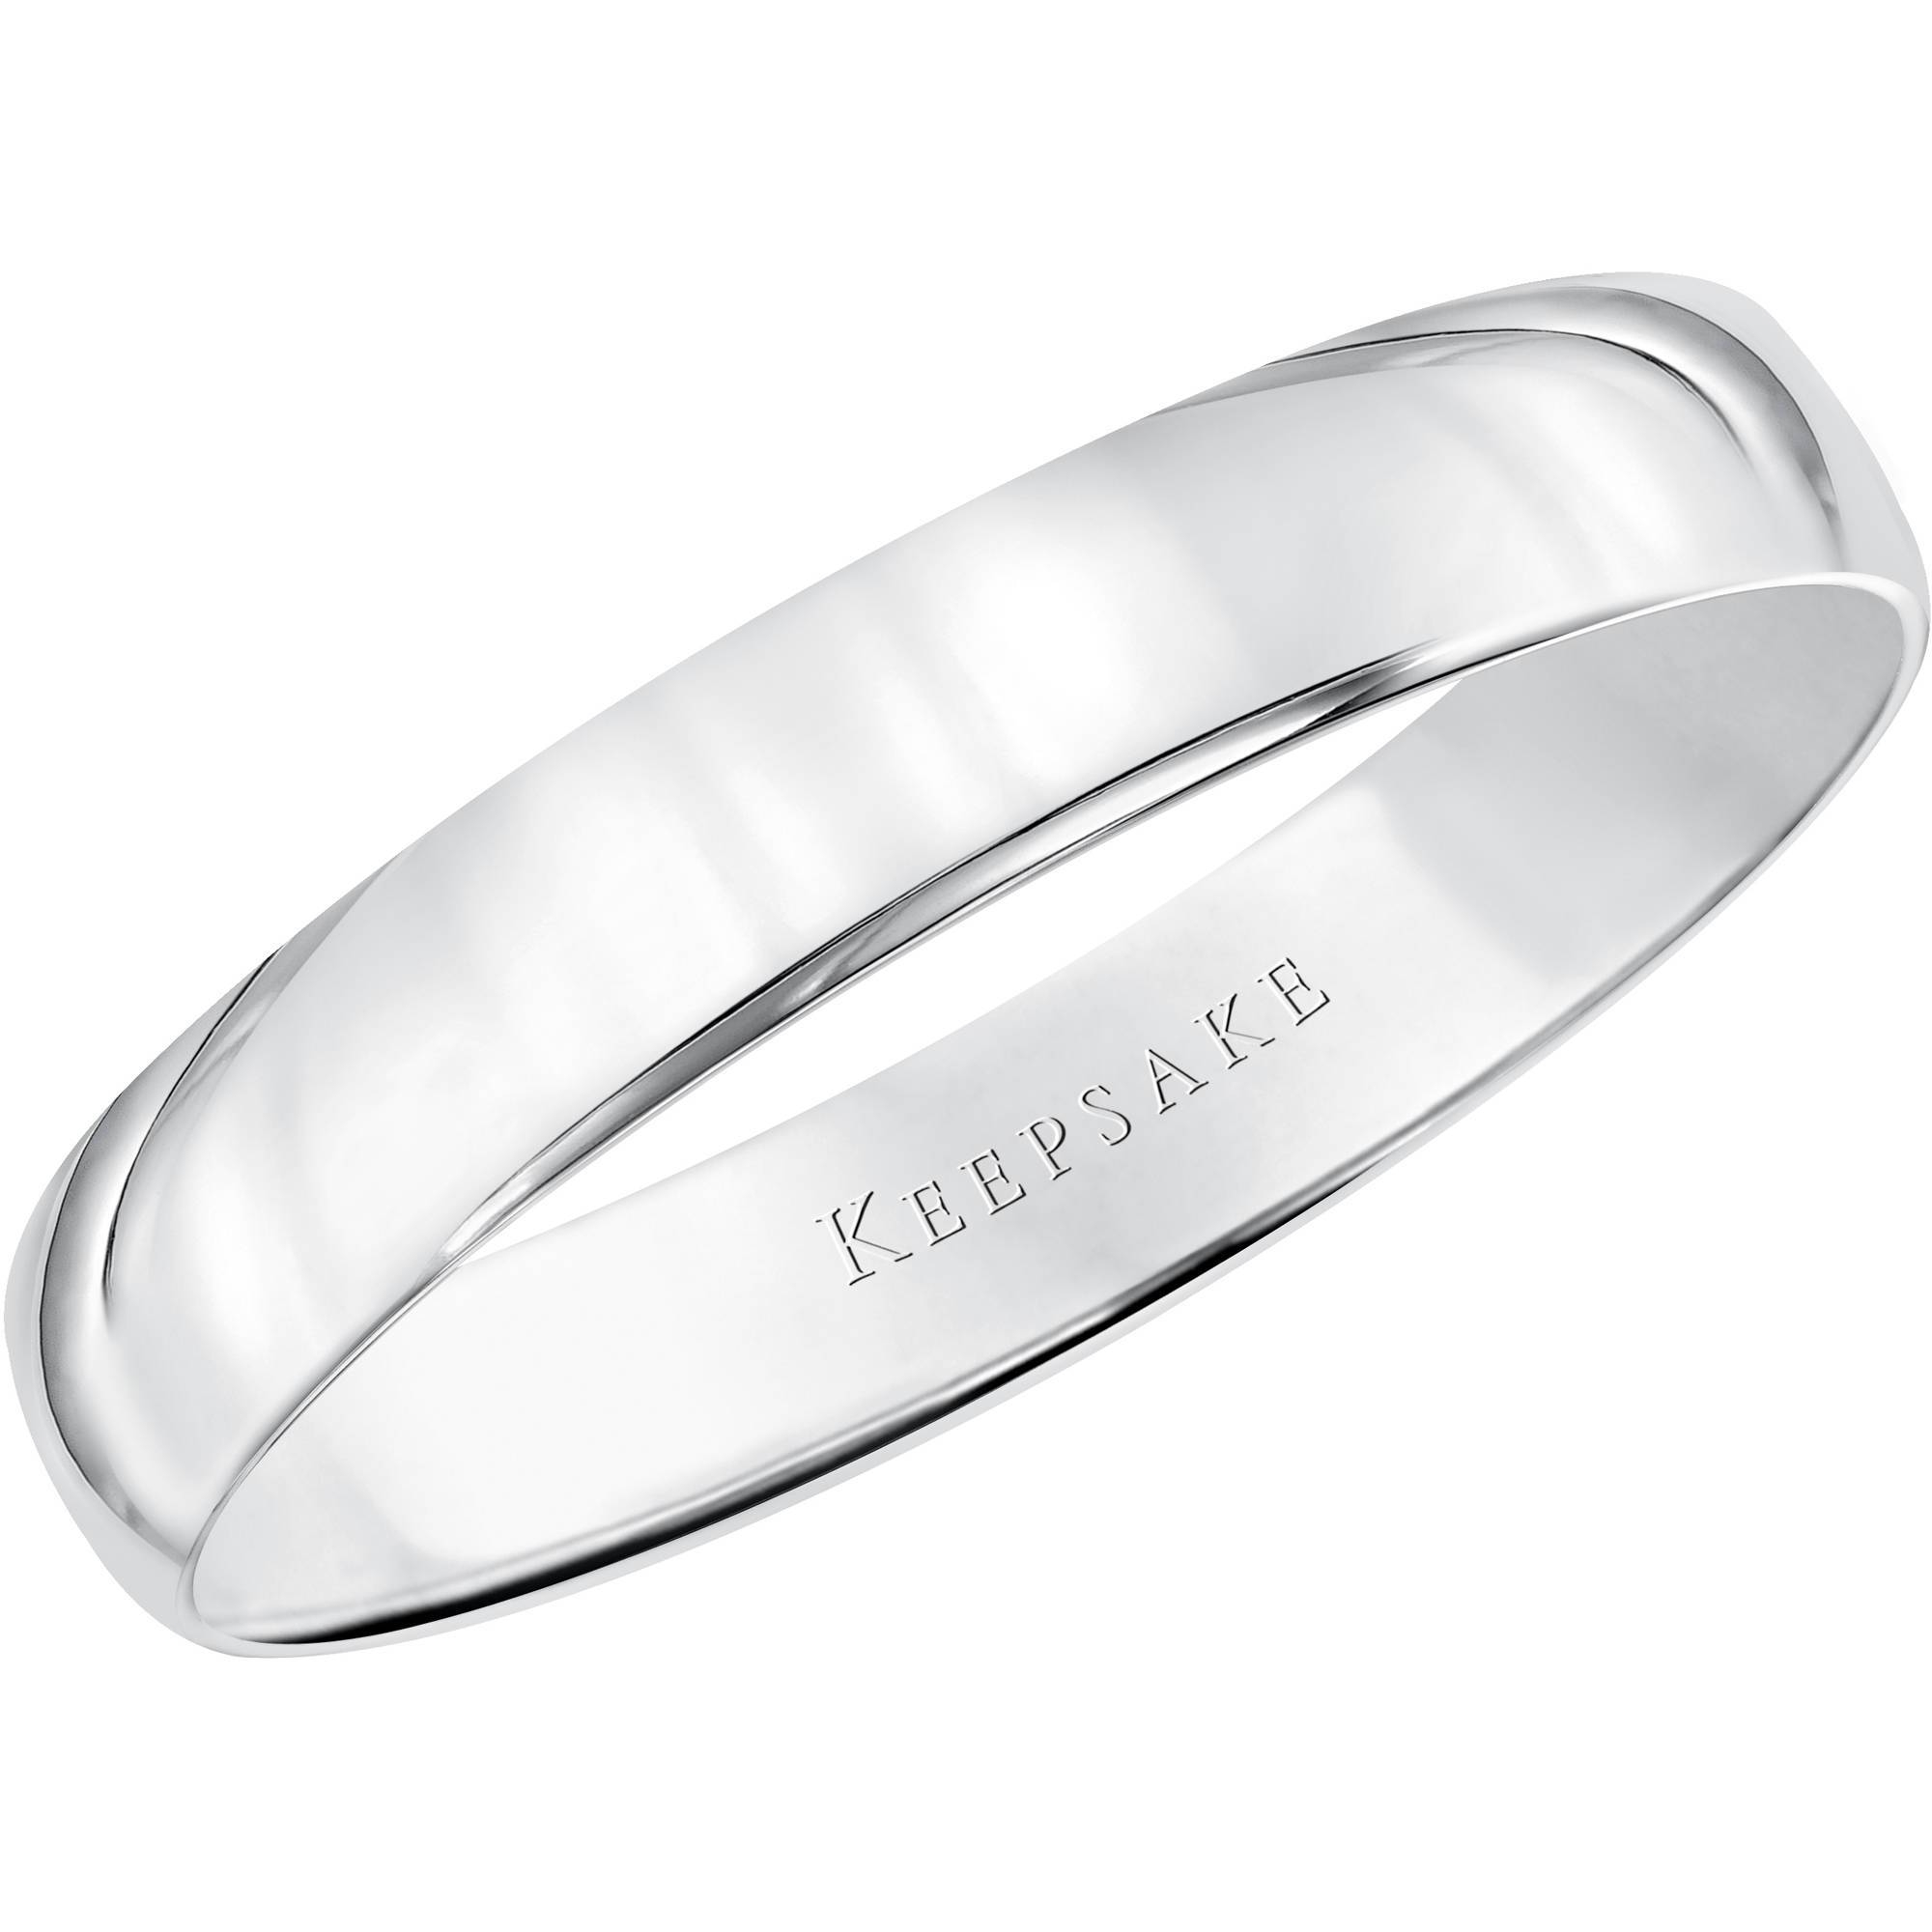 Keepsake 10Kt White Gold Wedding Band, 4Mm – Walmart With Regard To Most Up To Date 4Mm Comfort Fit Wedding Bands (Gallery 5 of 15)